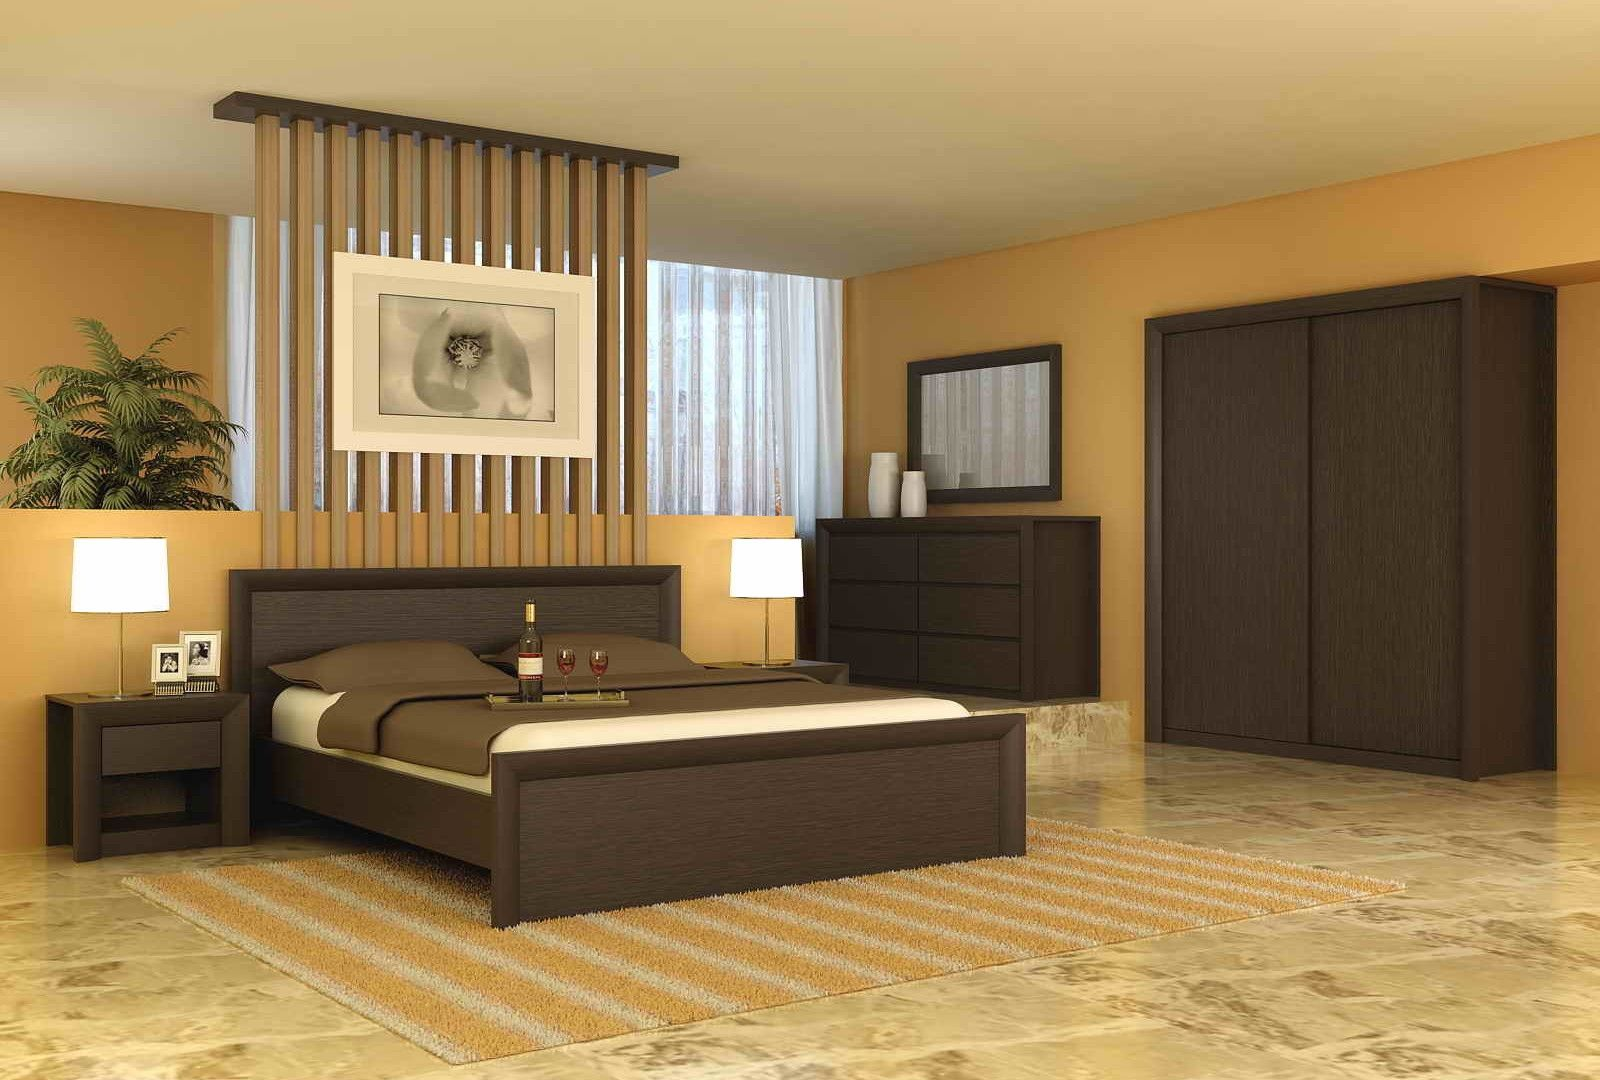 simple bedroom wall wardrobe design simple modern bedroom decorating ideas with calm wall color shades and - Bedroom Interior Decorating